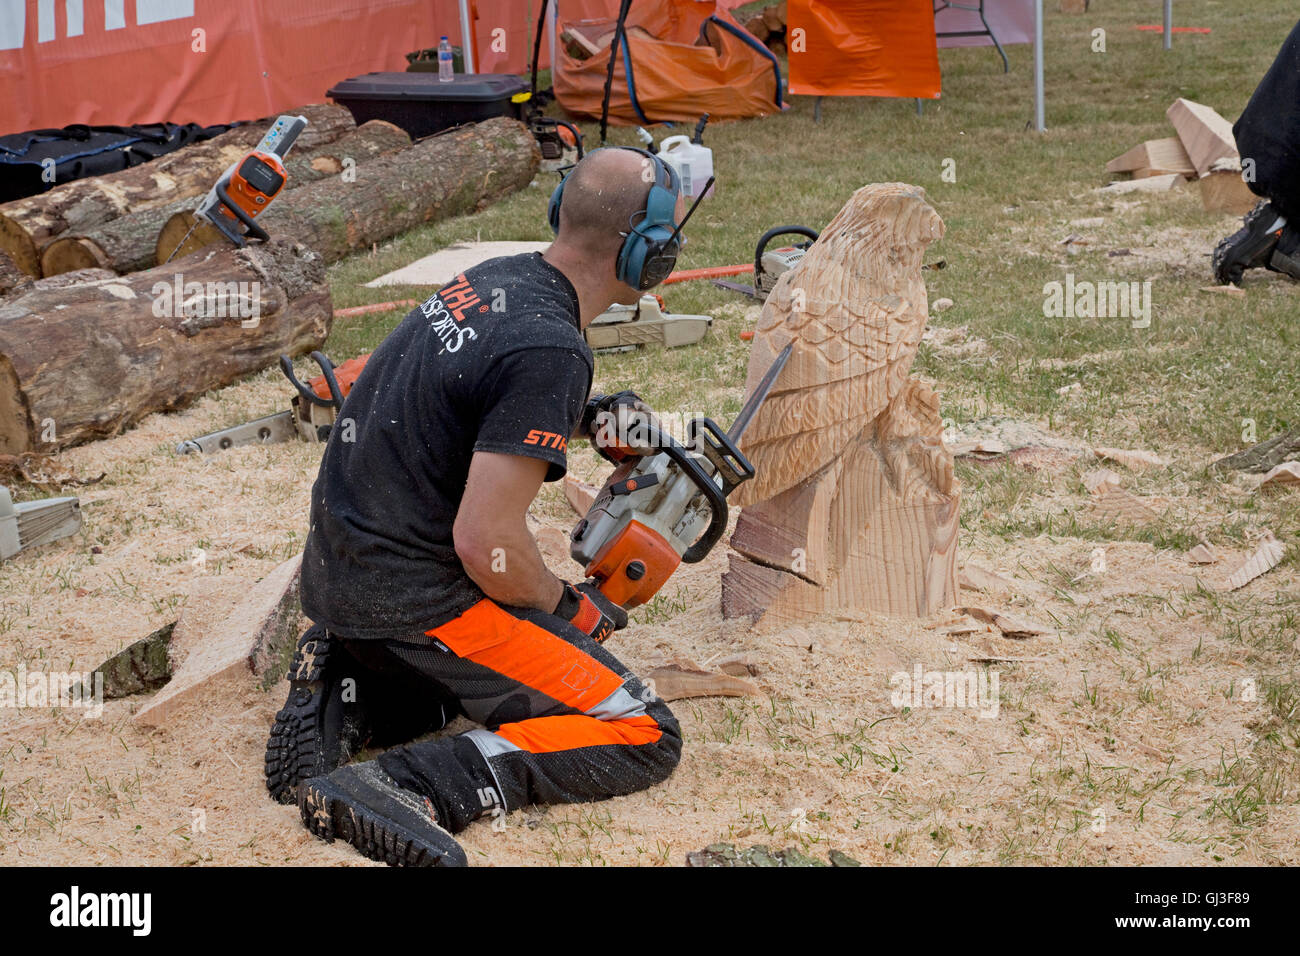 Man chainsaw artist carving eagle from log at countryfile